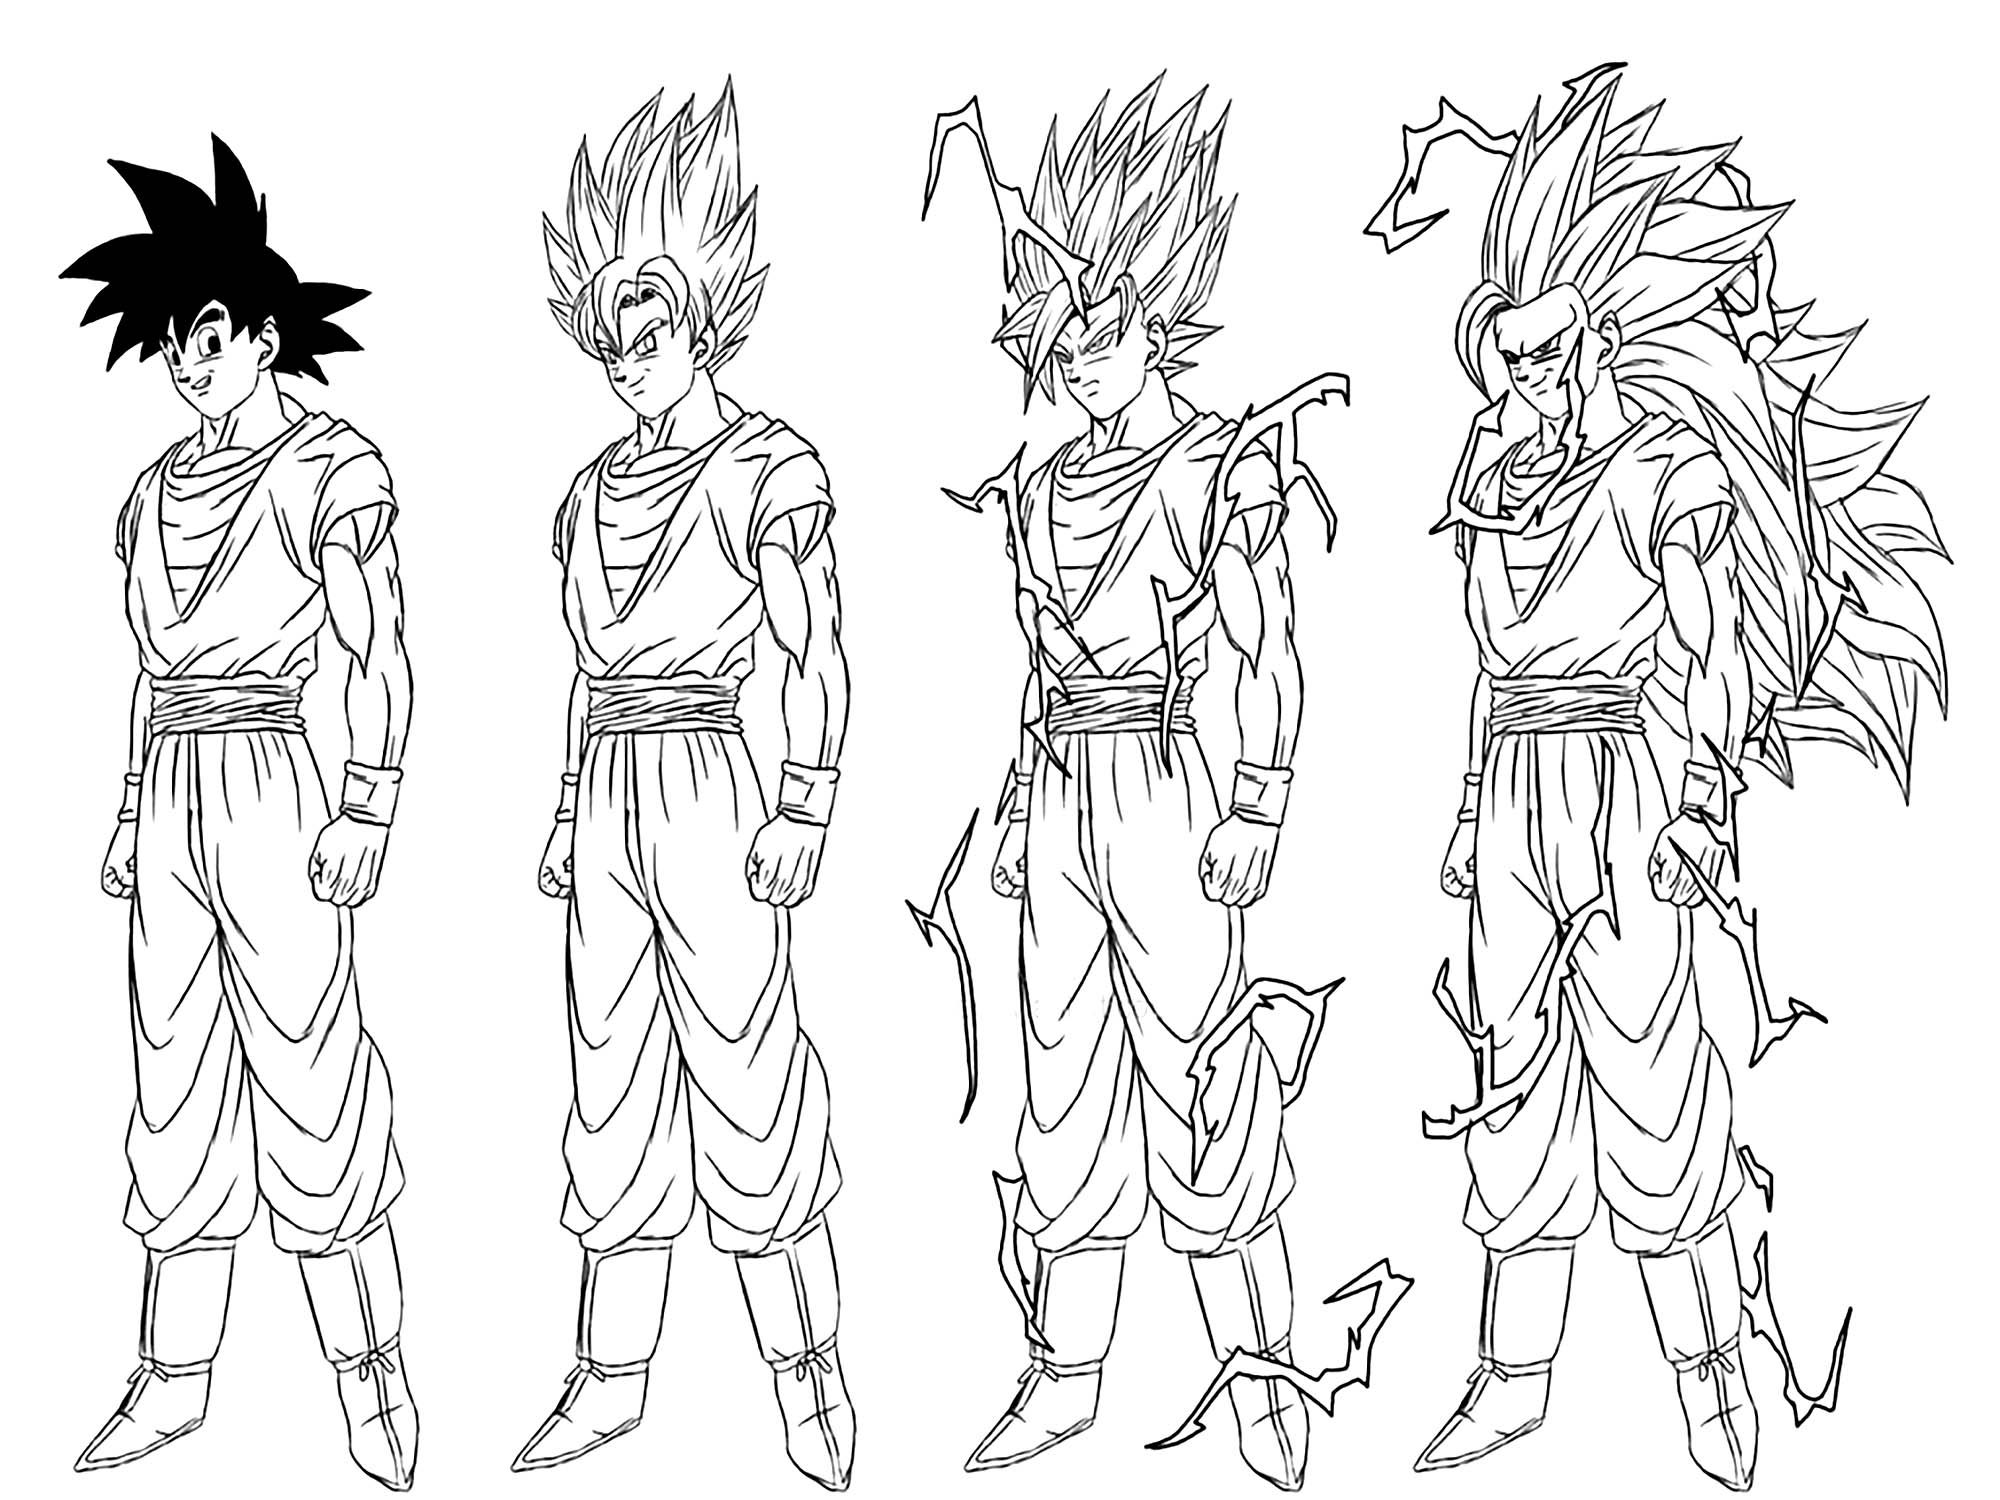 Dragon Ball Z Coloring Pages Free Http Www Wallpaperartdesignhd Us Dragon Ball Z Coloring Pages Free Dragon Coloring Page Super Coloring Pages Dragon Ball Z